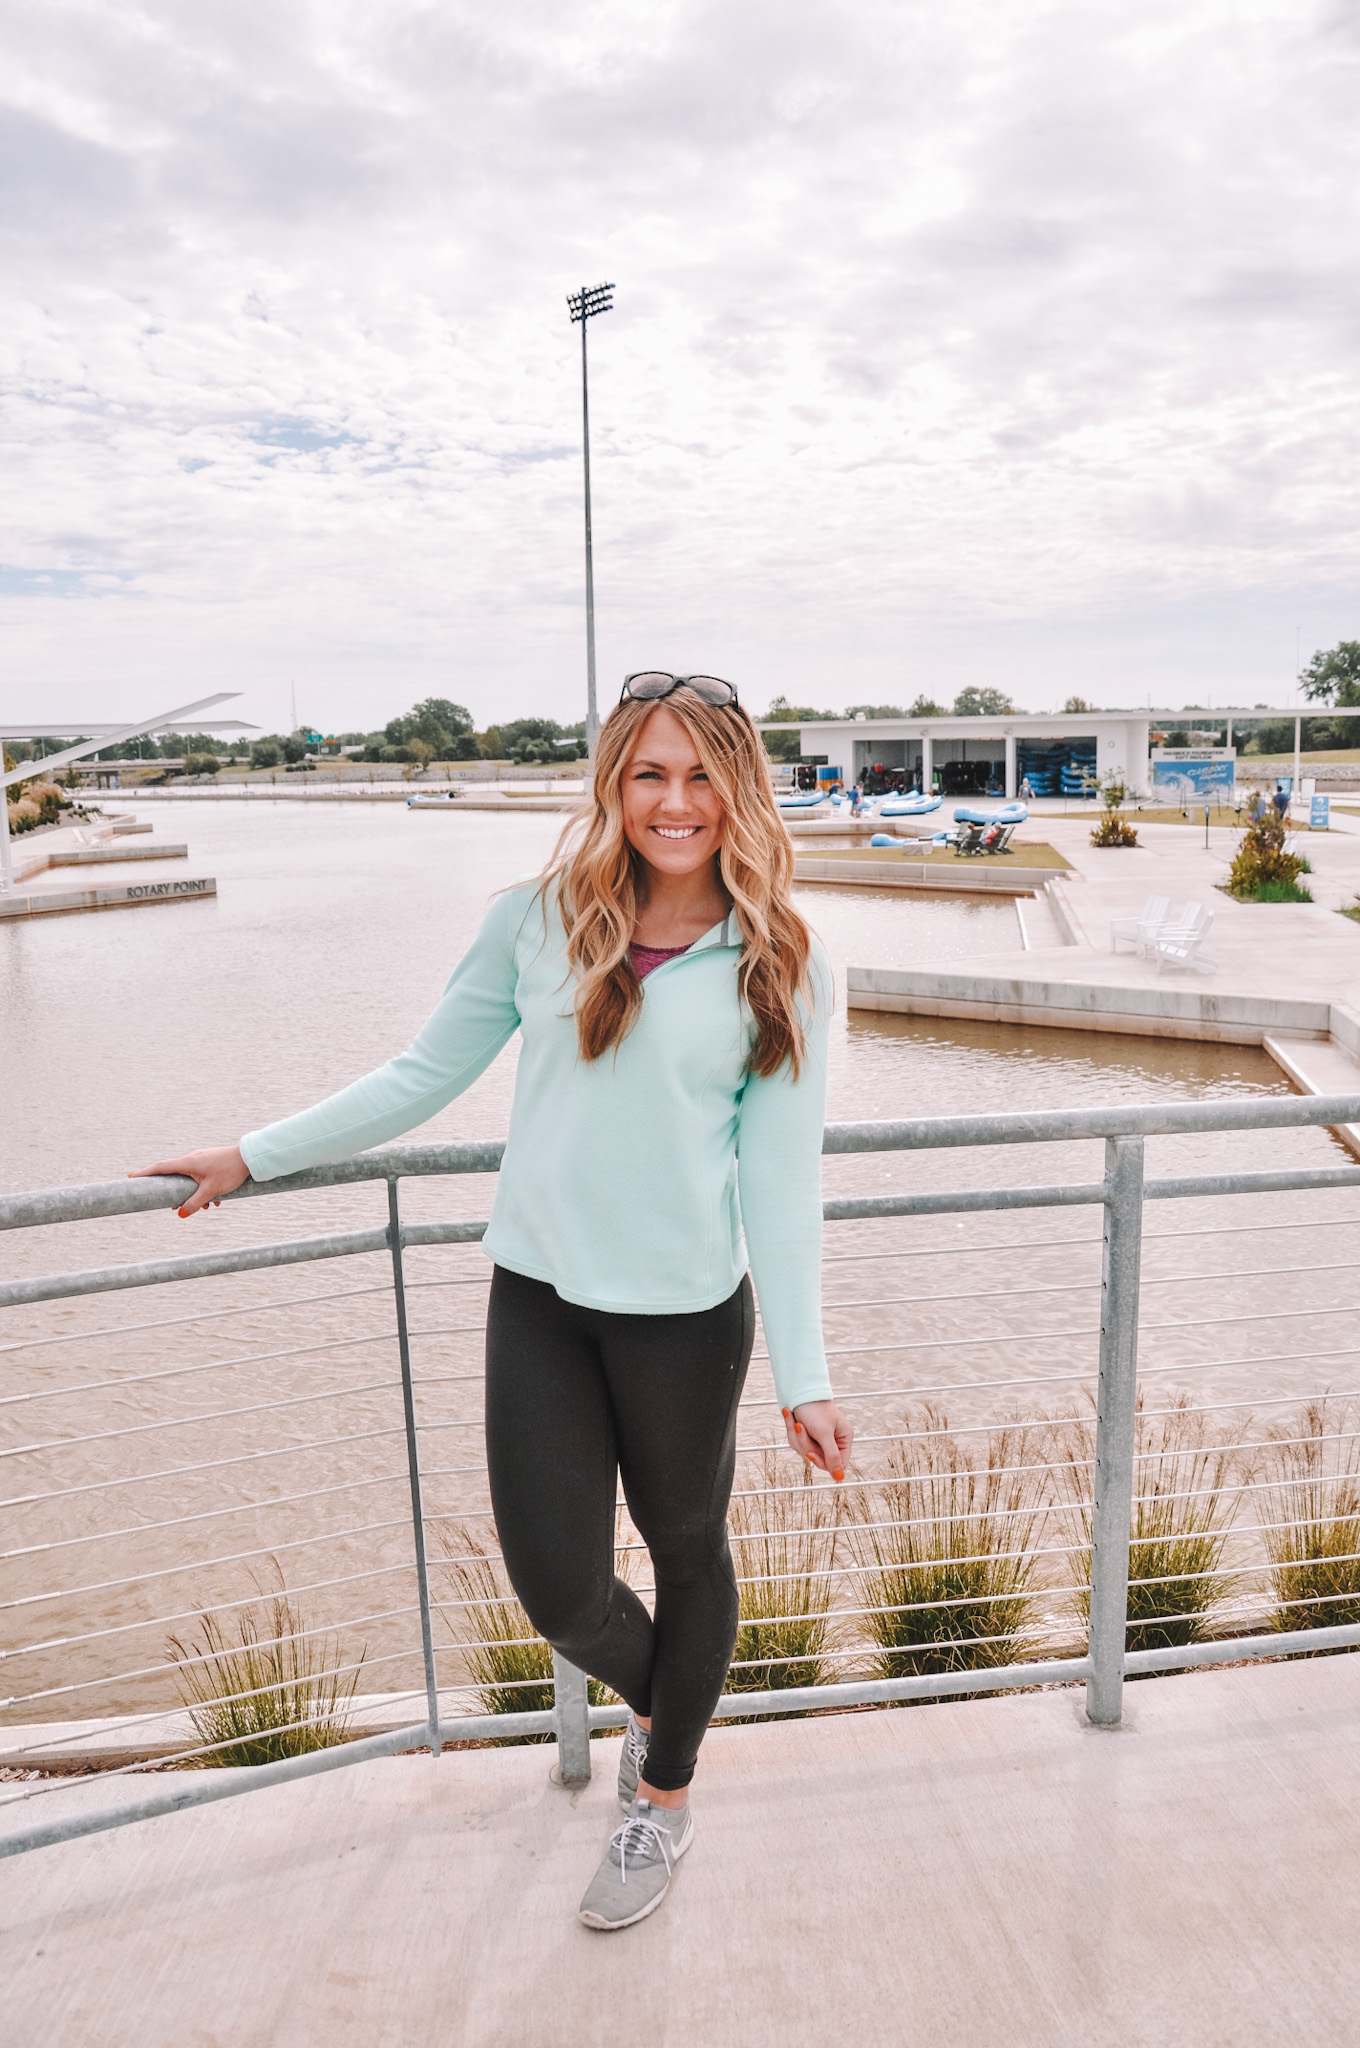 Oklahoma City travel and lifestyle blogger Amanda's OK goes whitewater rafting at Riversport OKC